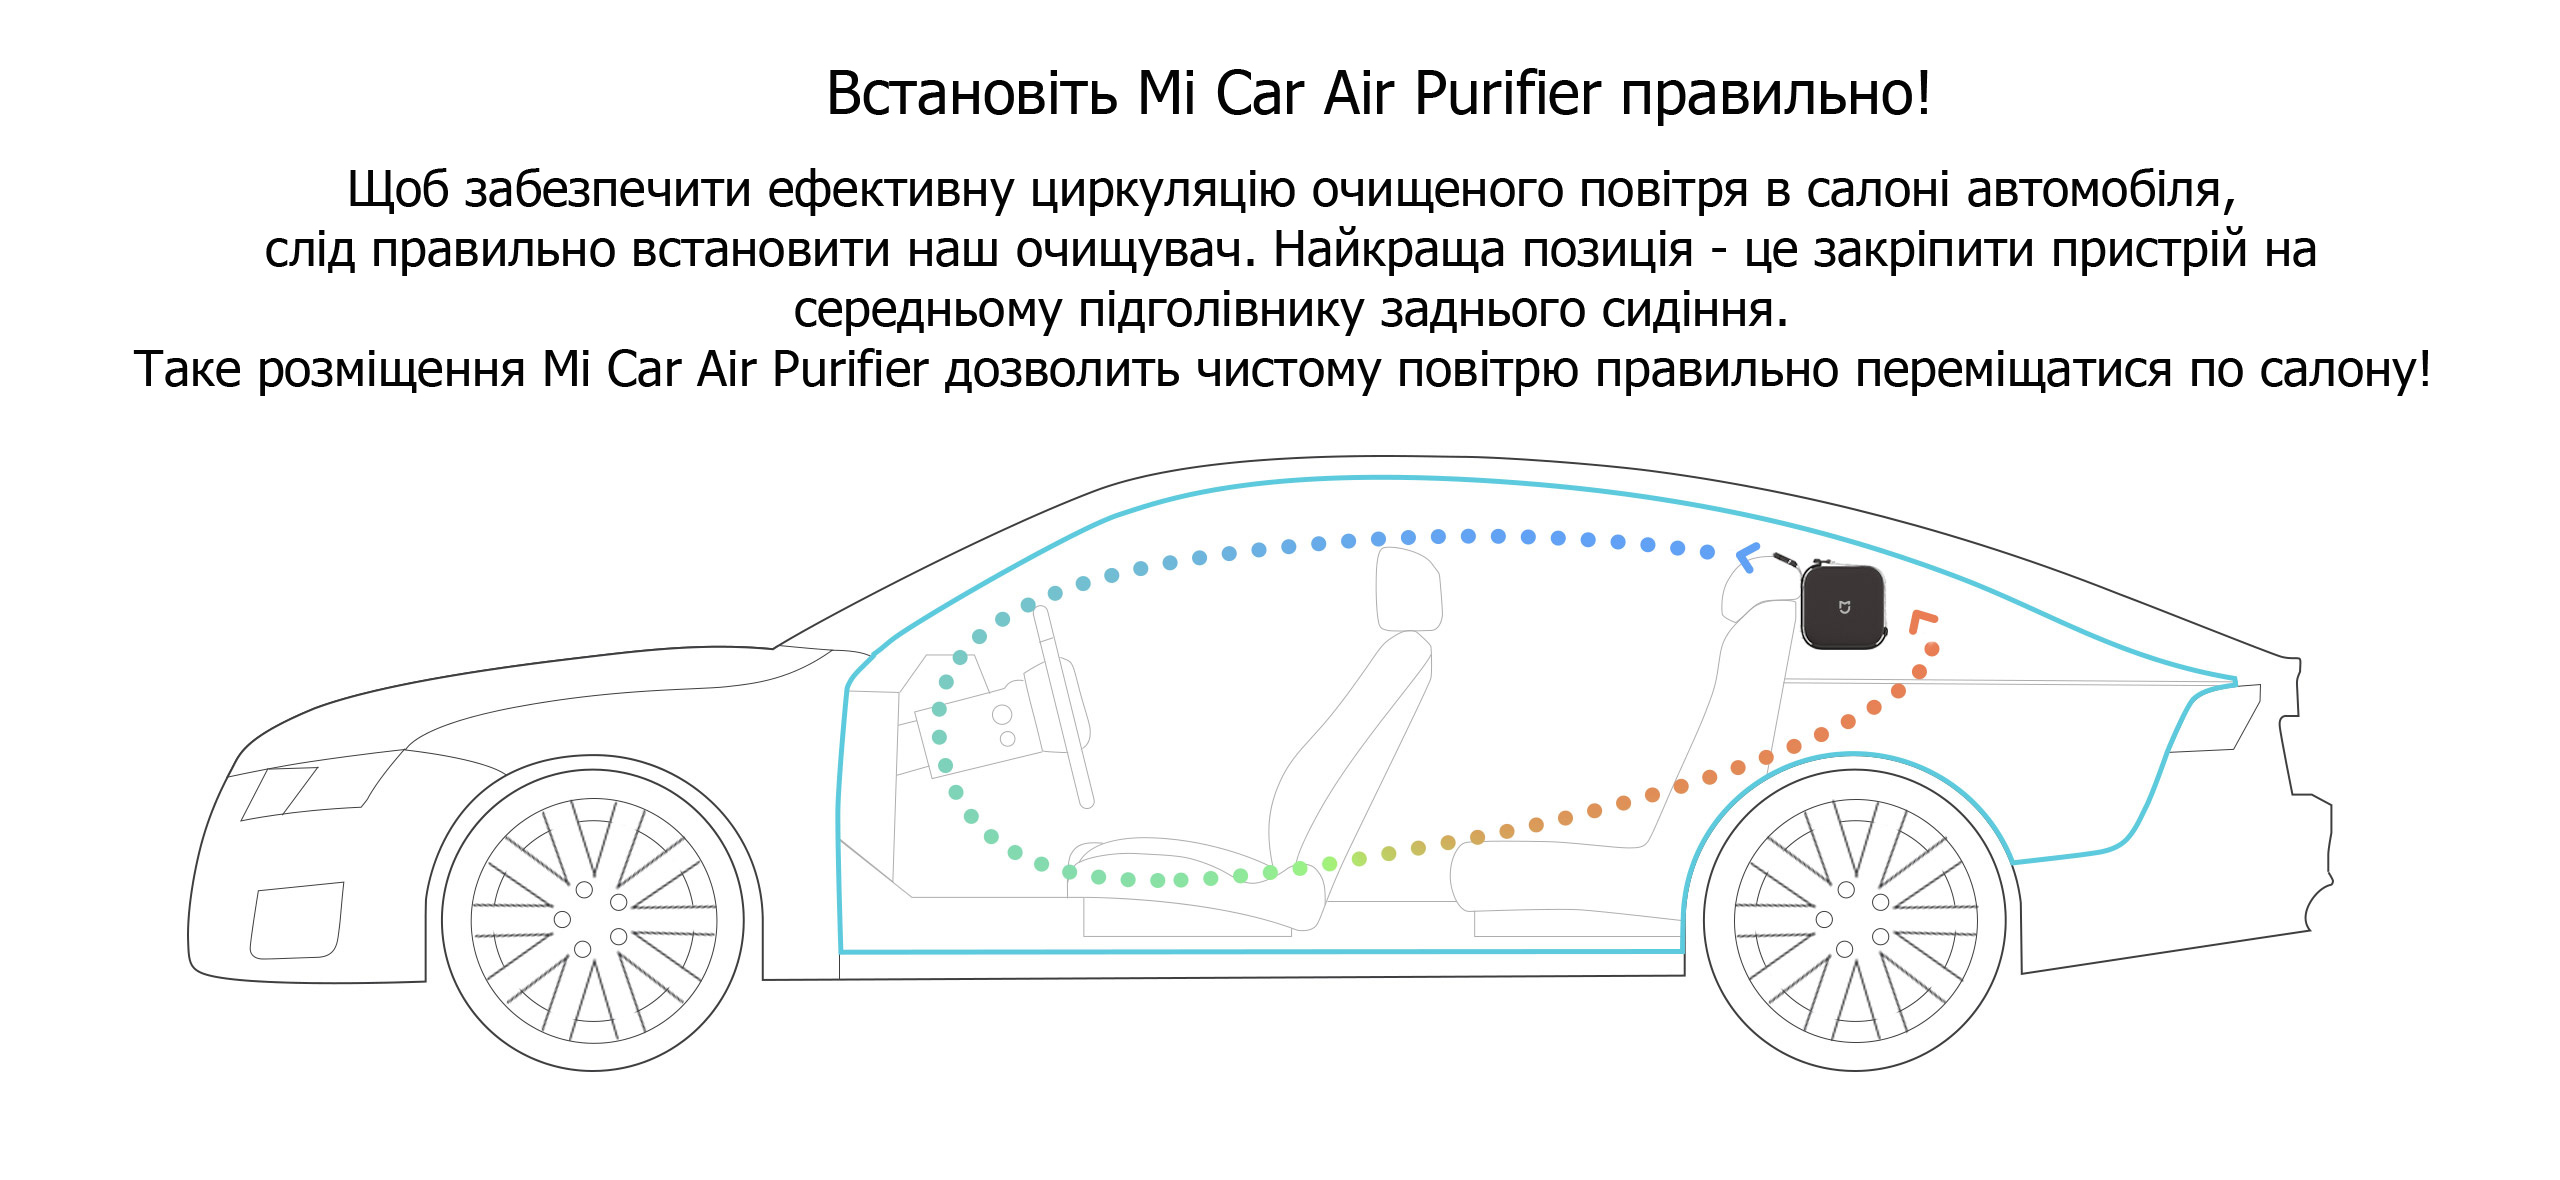 Mi Car Air Purifier Black циркулювання